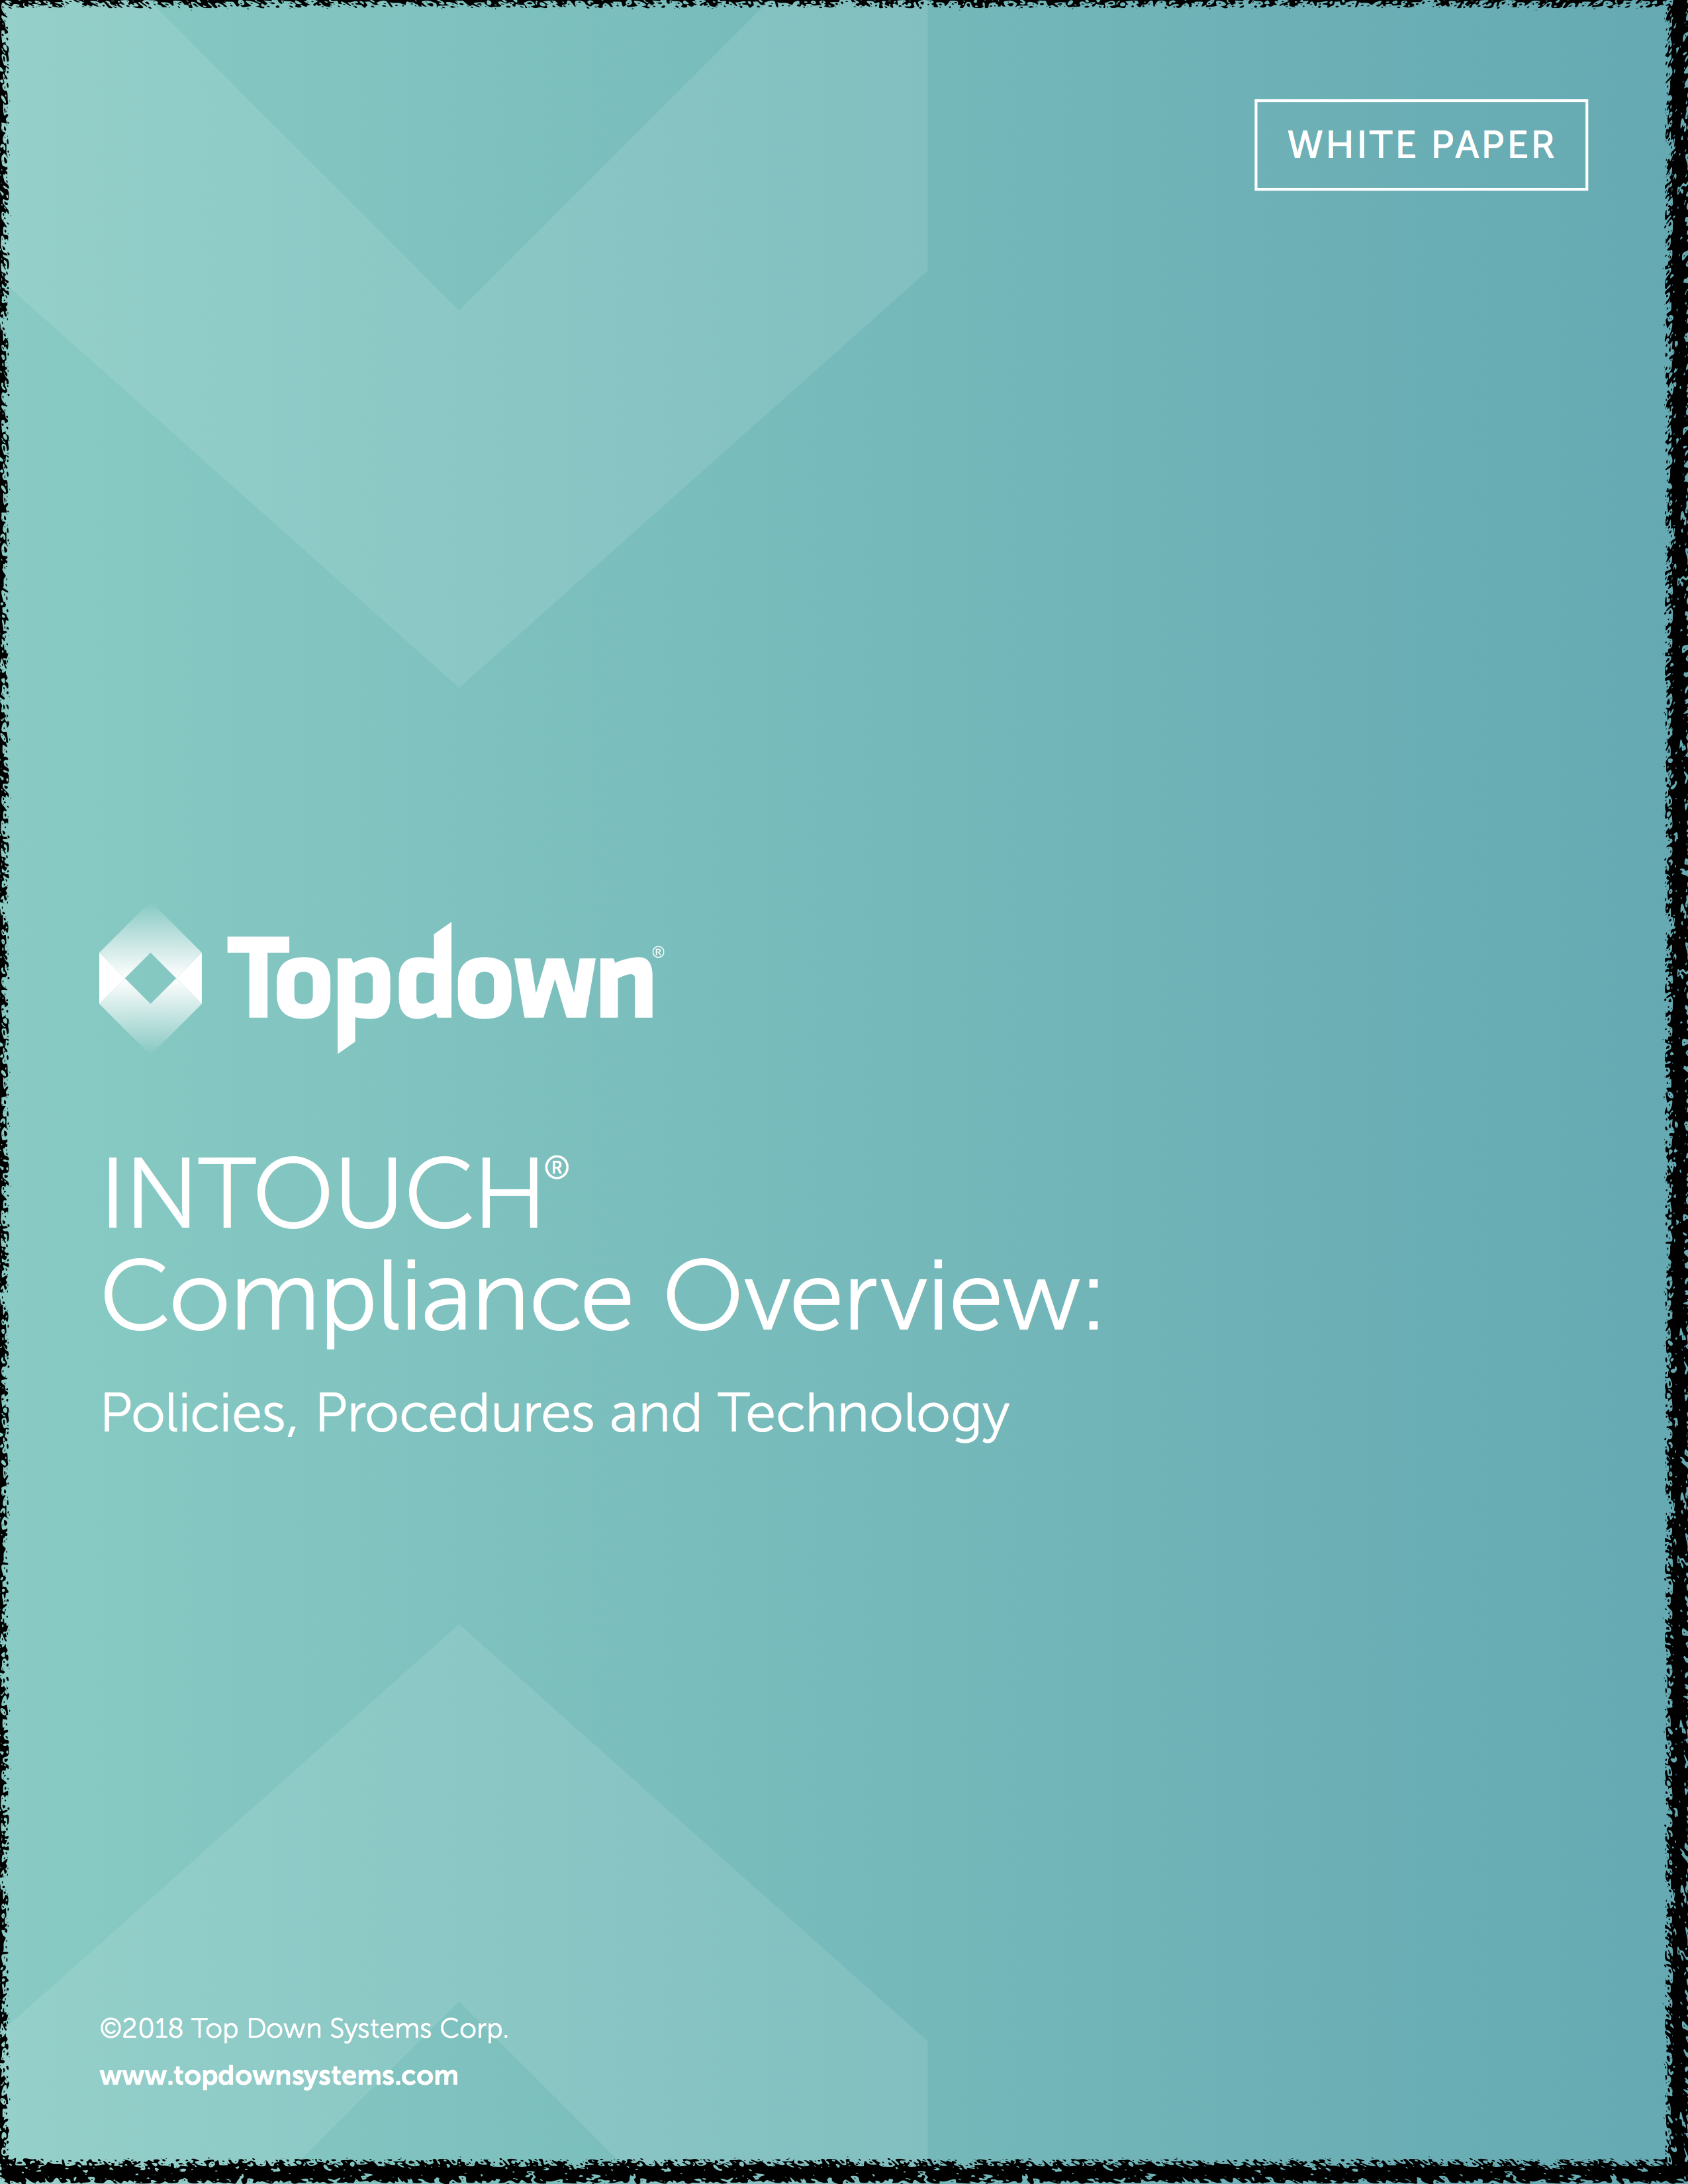 PDF on Topdown INTOUCH compliance